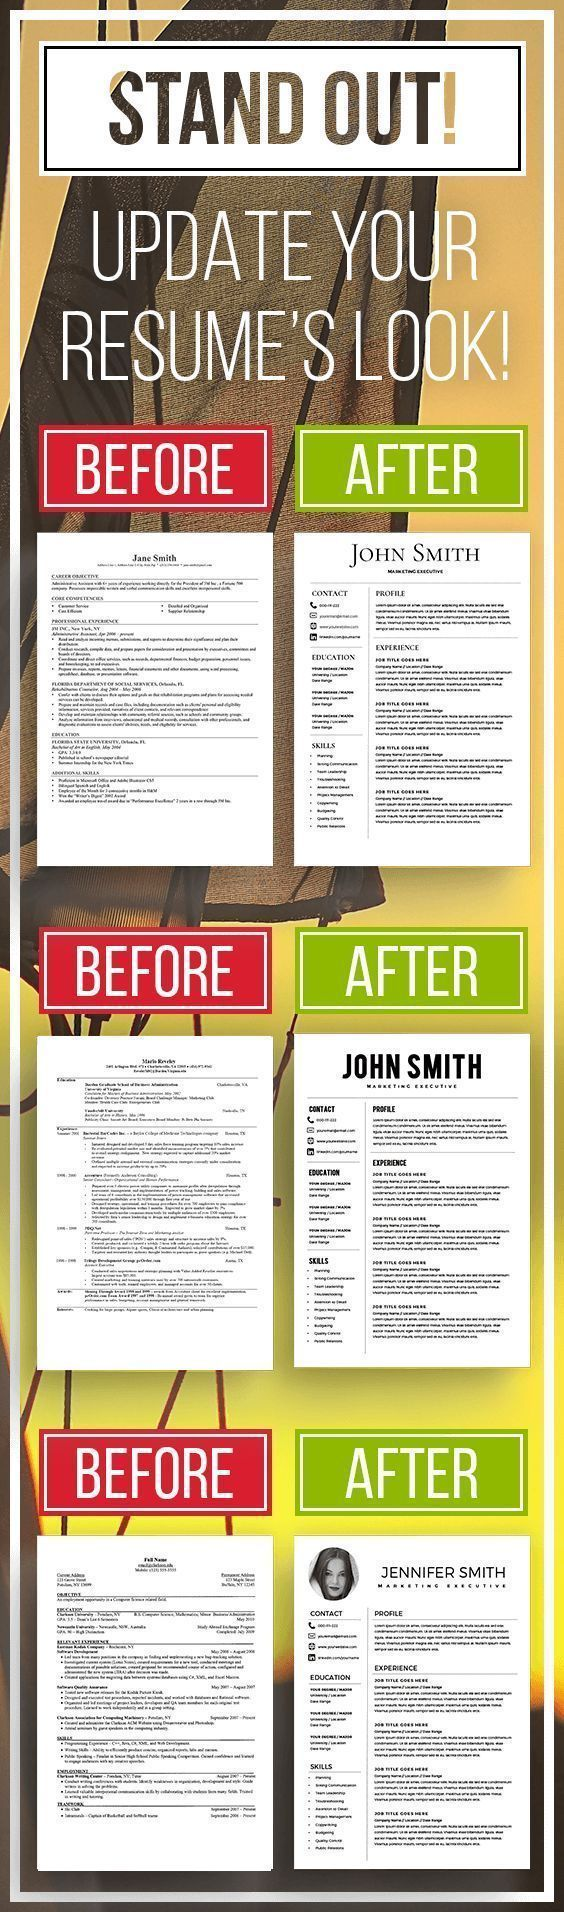 outline for a resume%0A cv template  resume template  minamilist resume  resume template word   creative resume